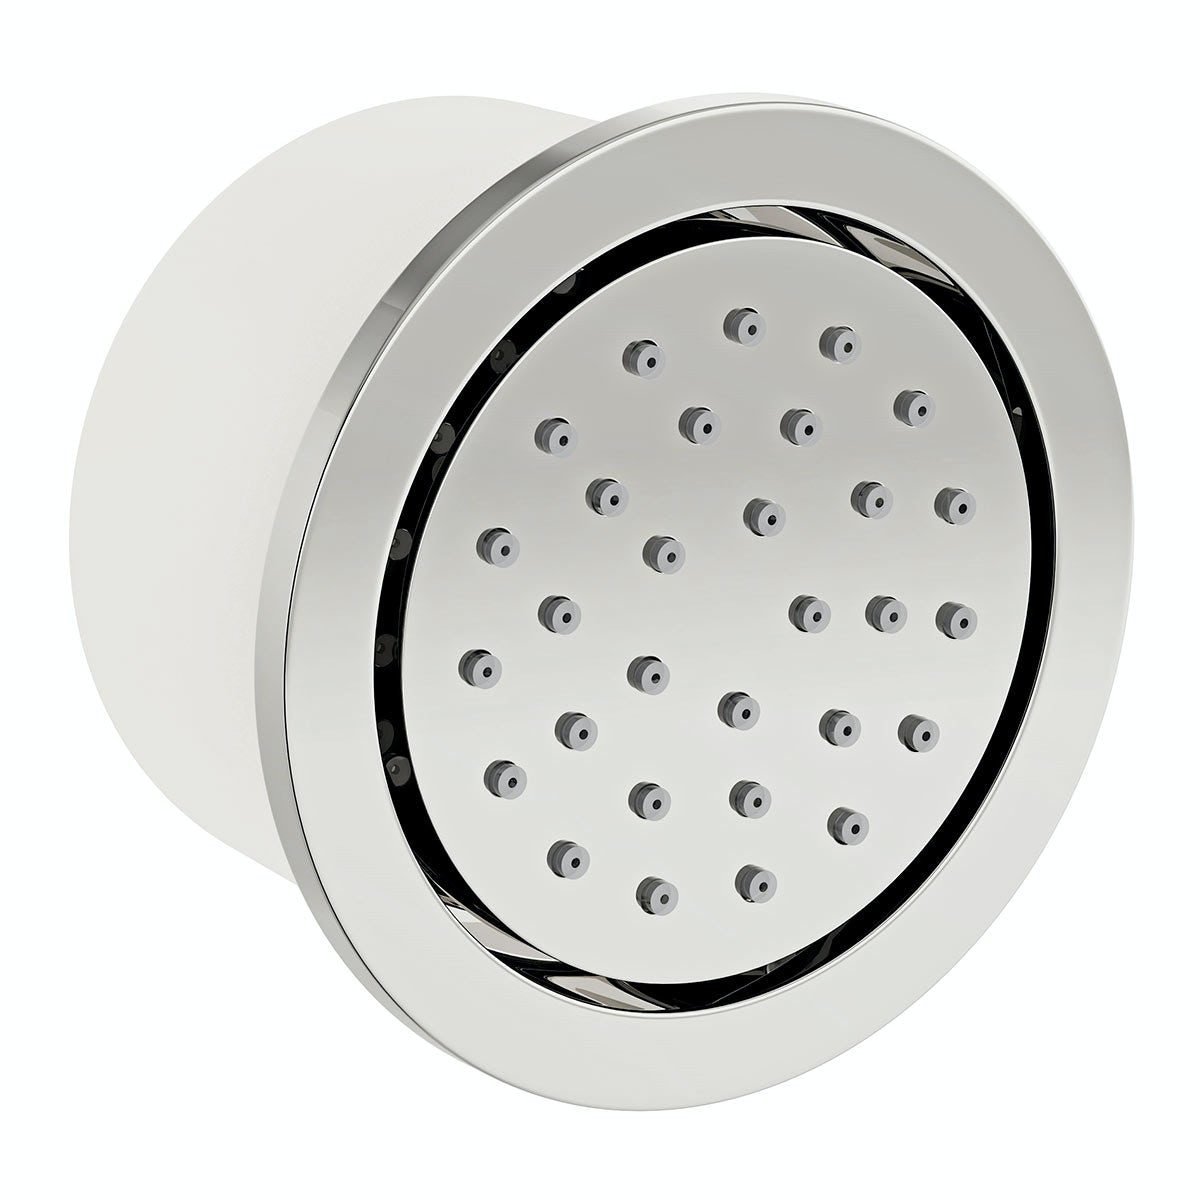 Mode Spa round shower body jet